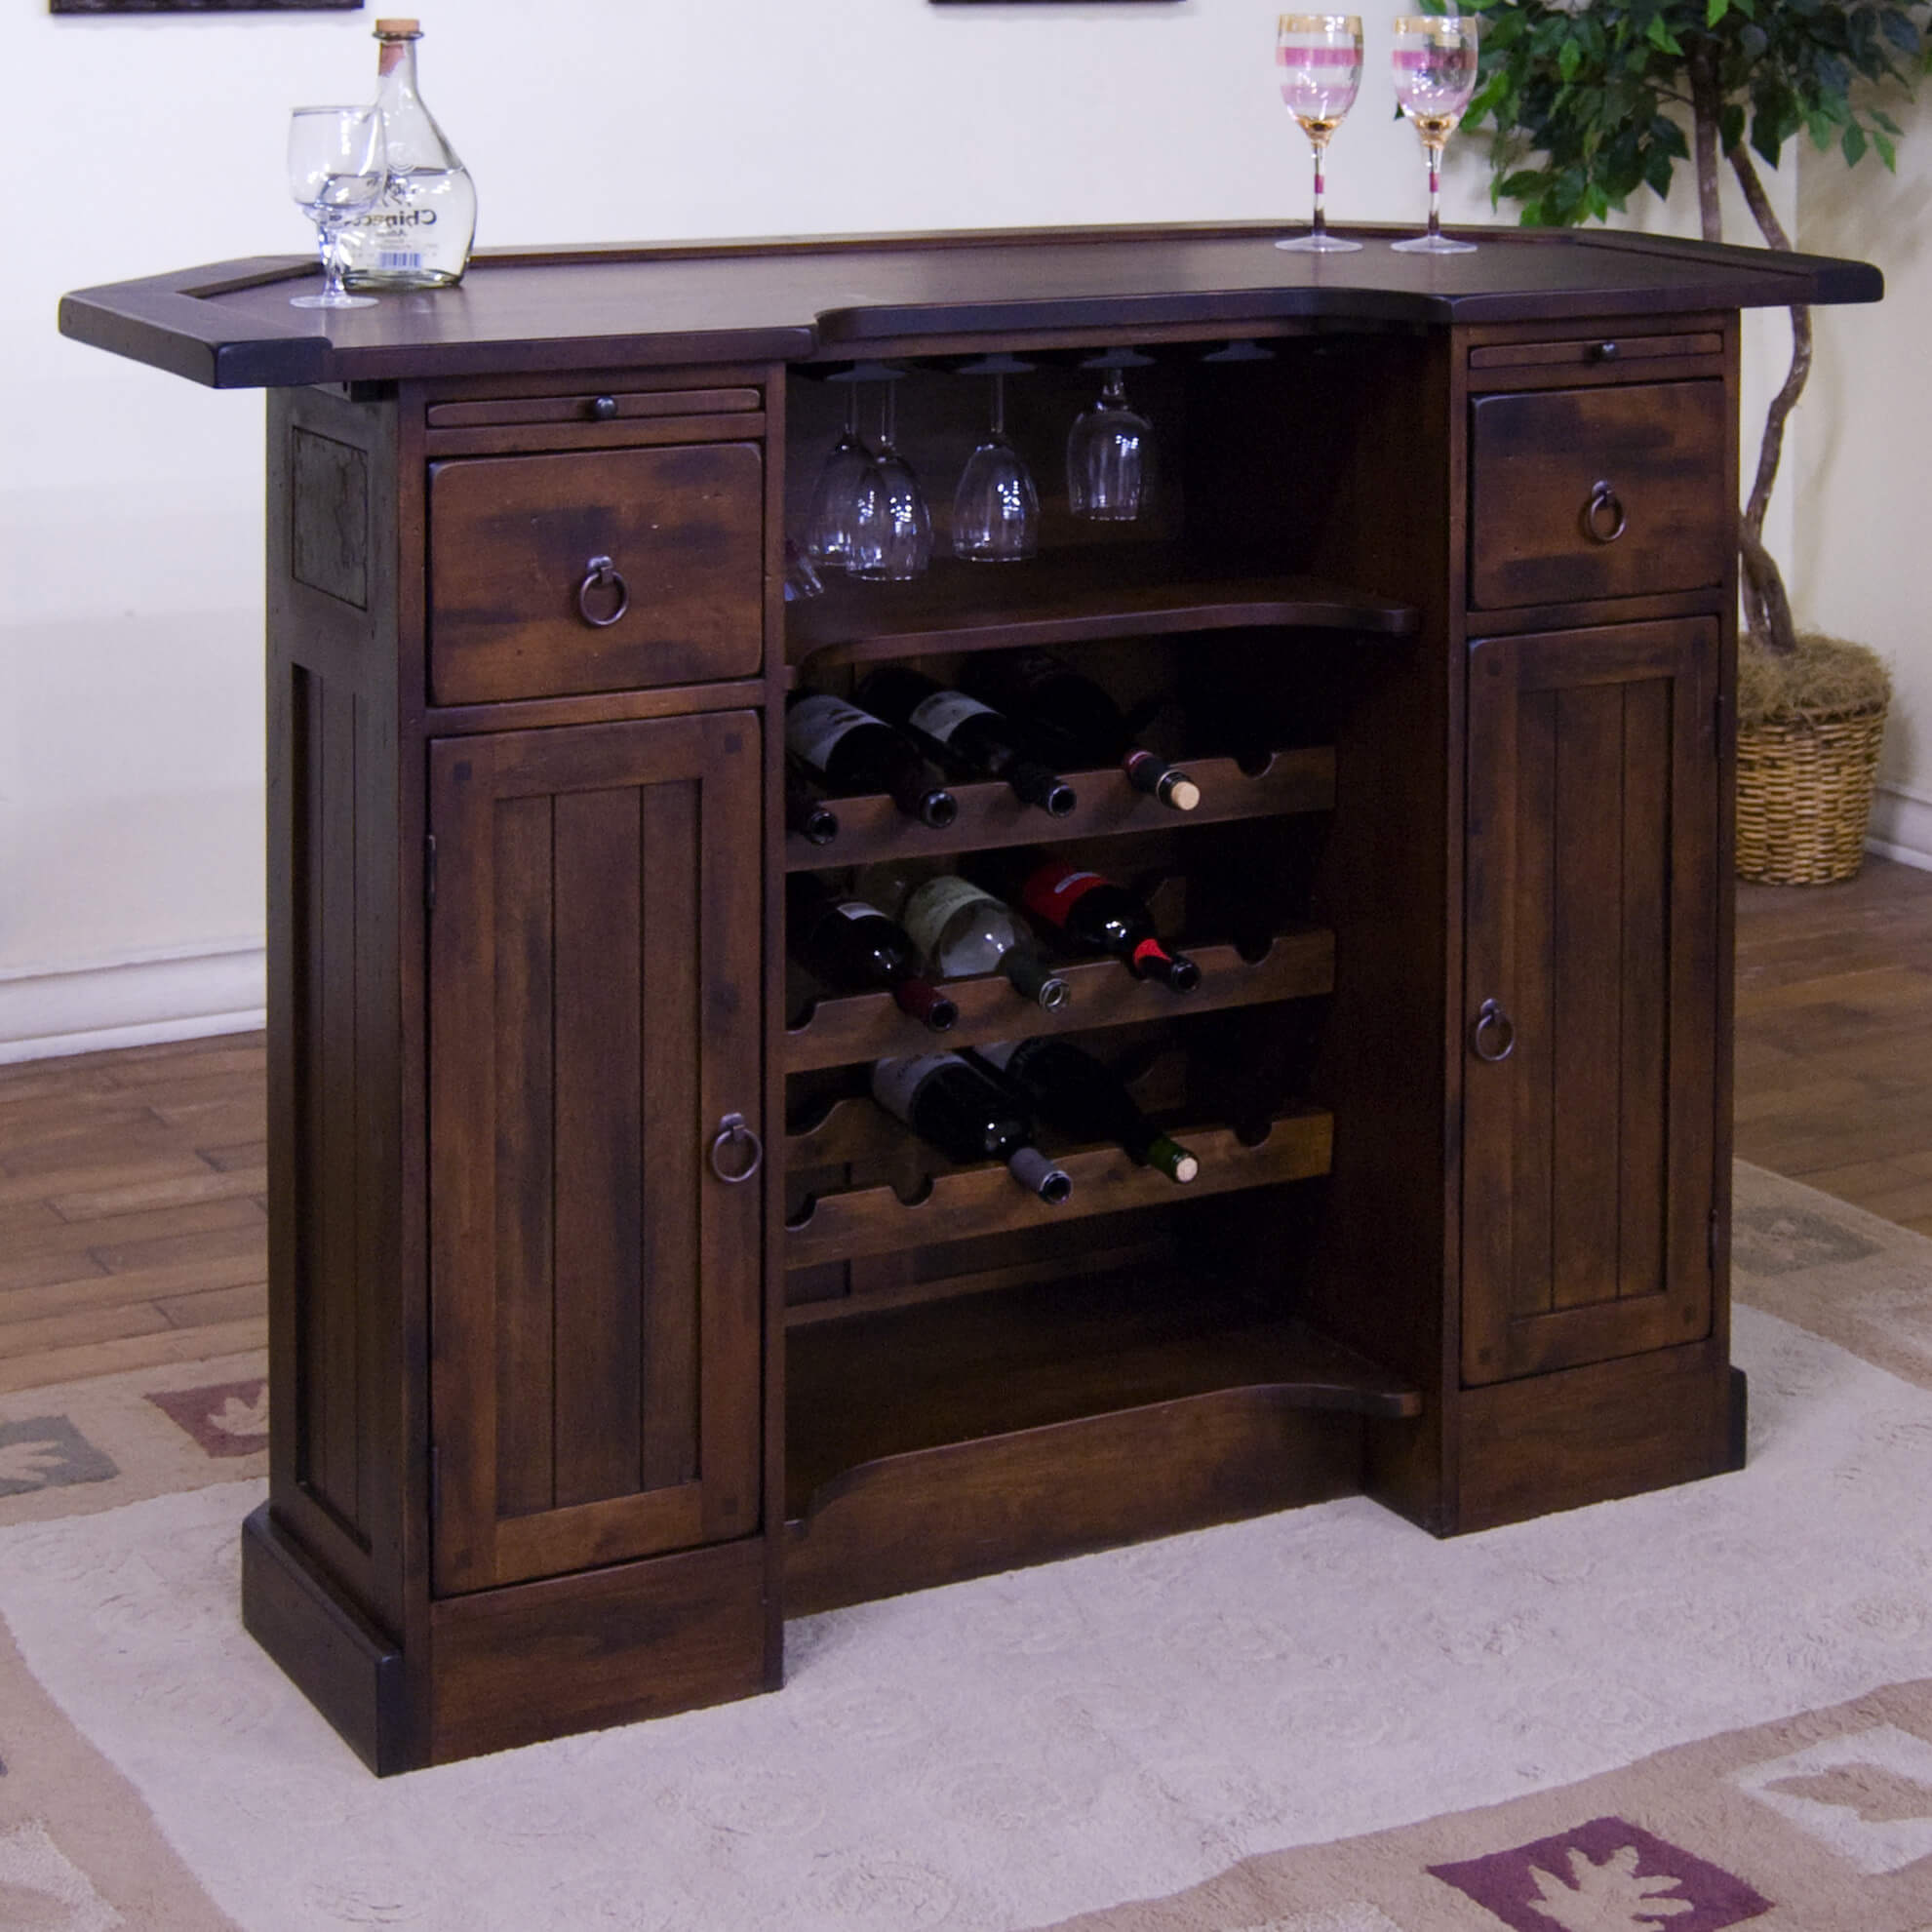 Back end view - This Birch wood bar is a one-level unit with a 15 bottle wine rack and closed storage.